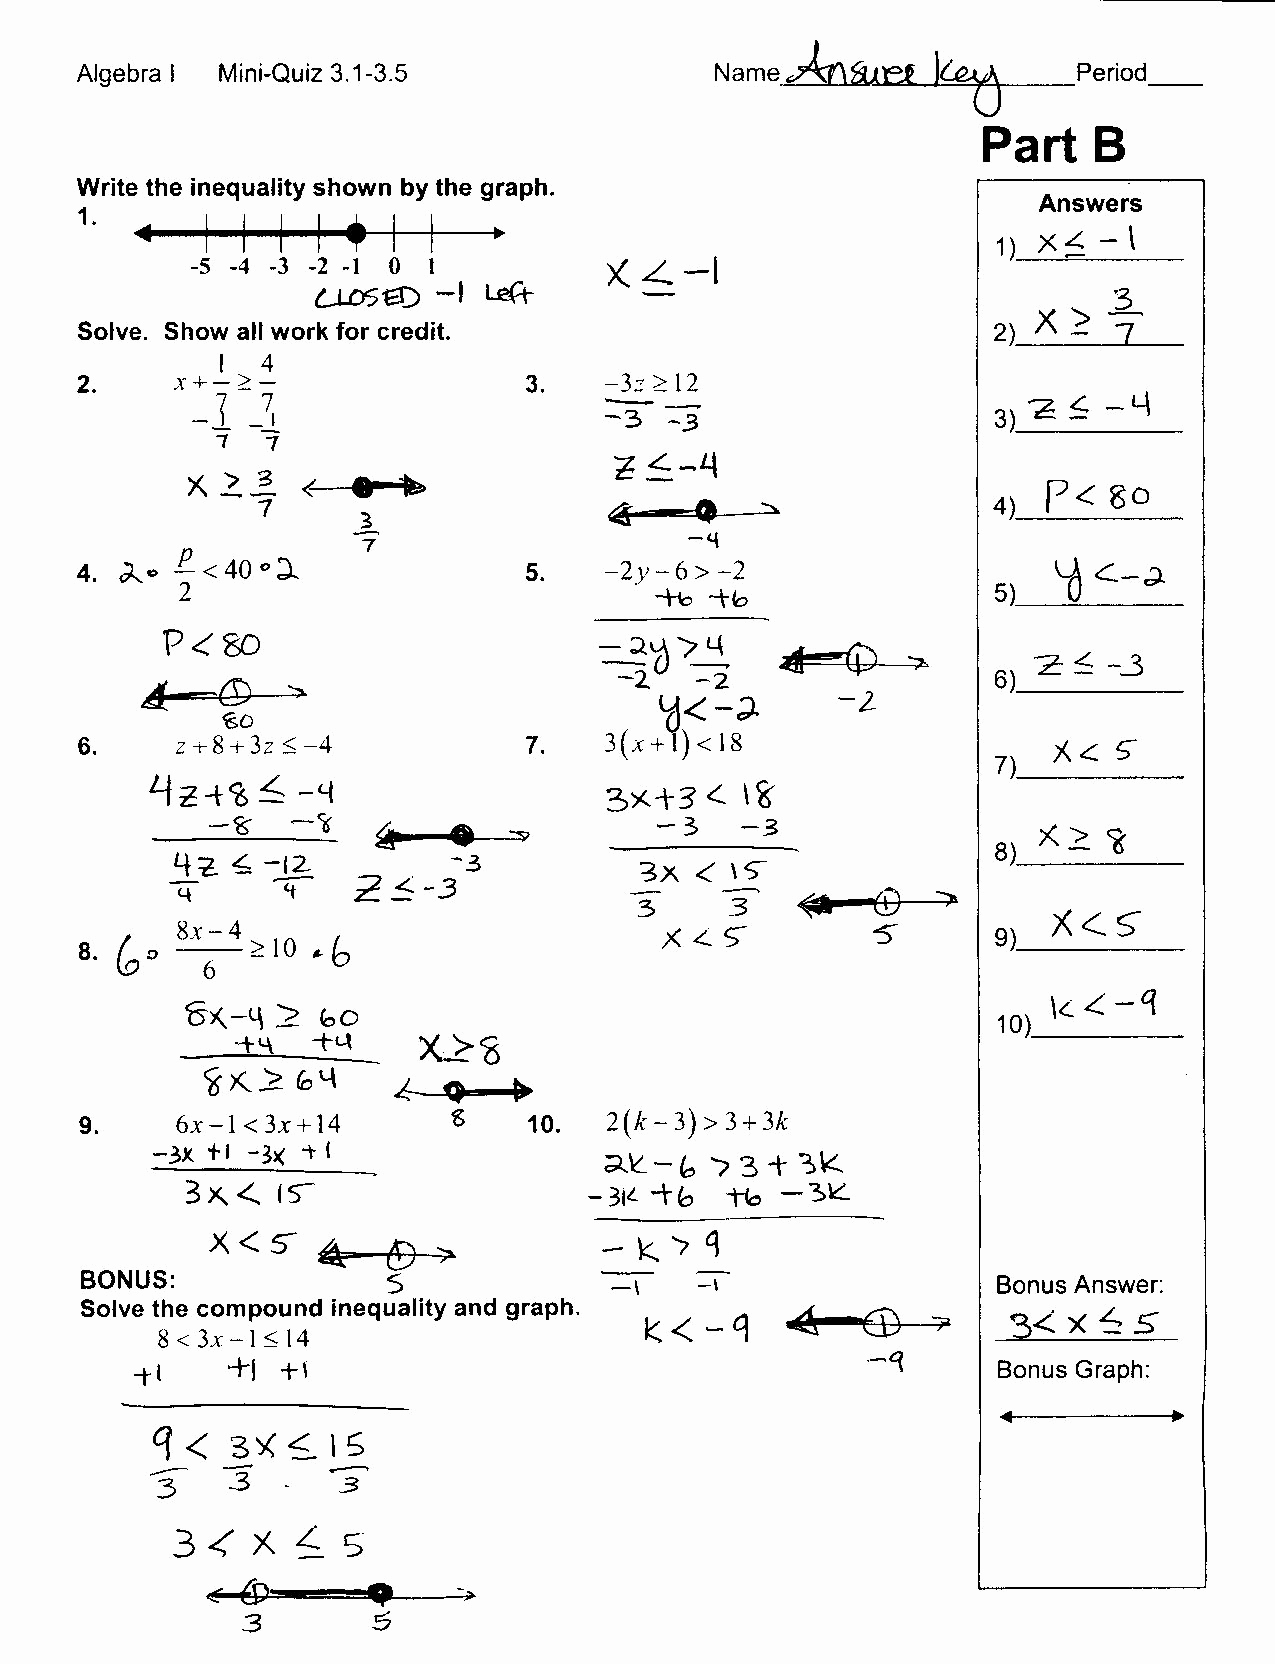 Cracking the Code Math Worksheets Lovely Crack the Code Math Worksheet